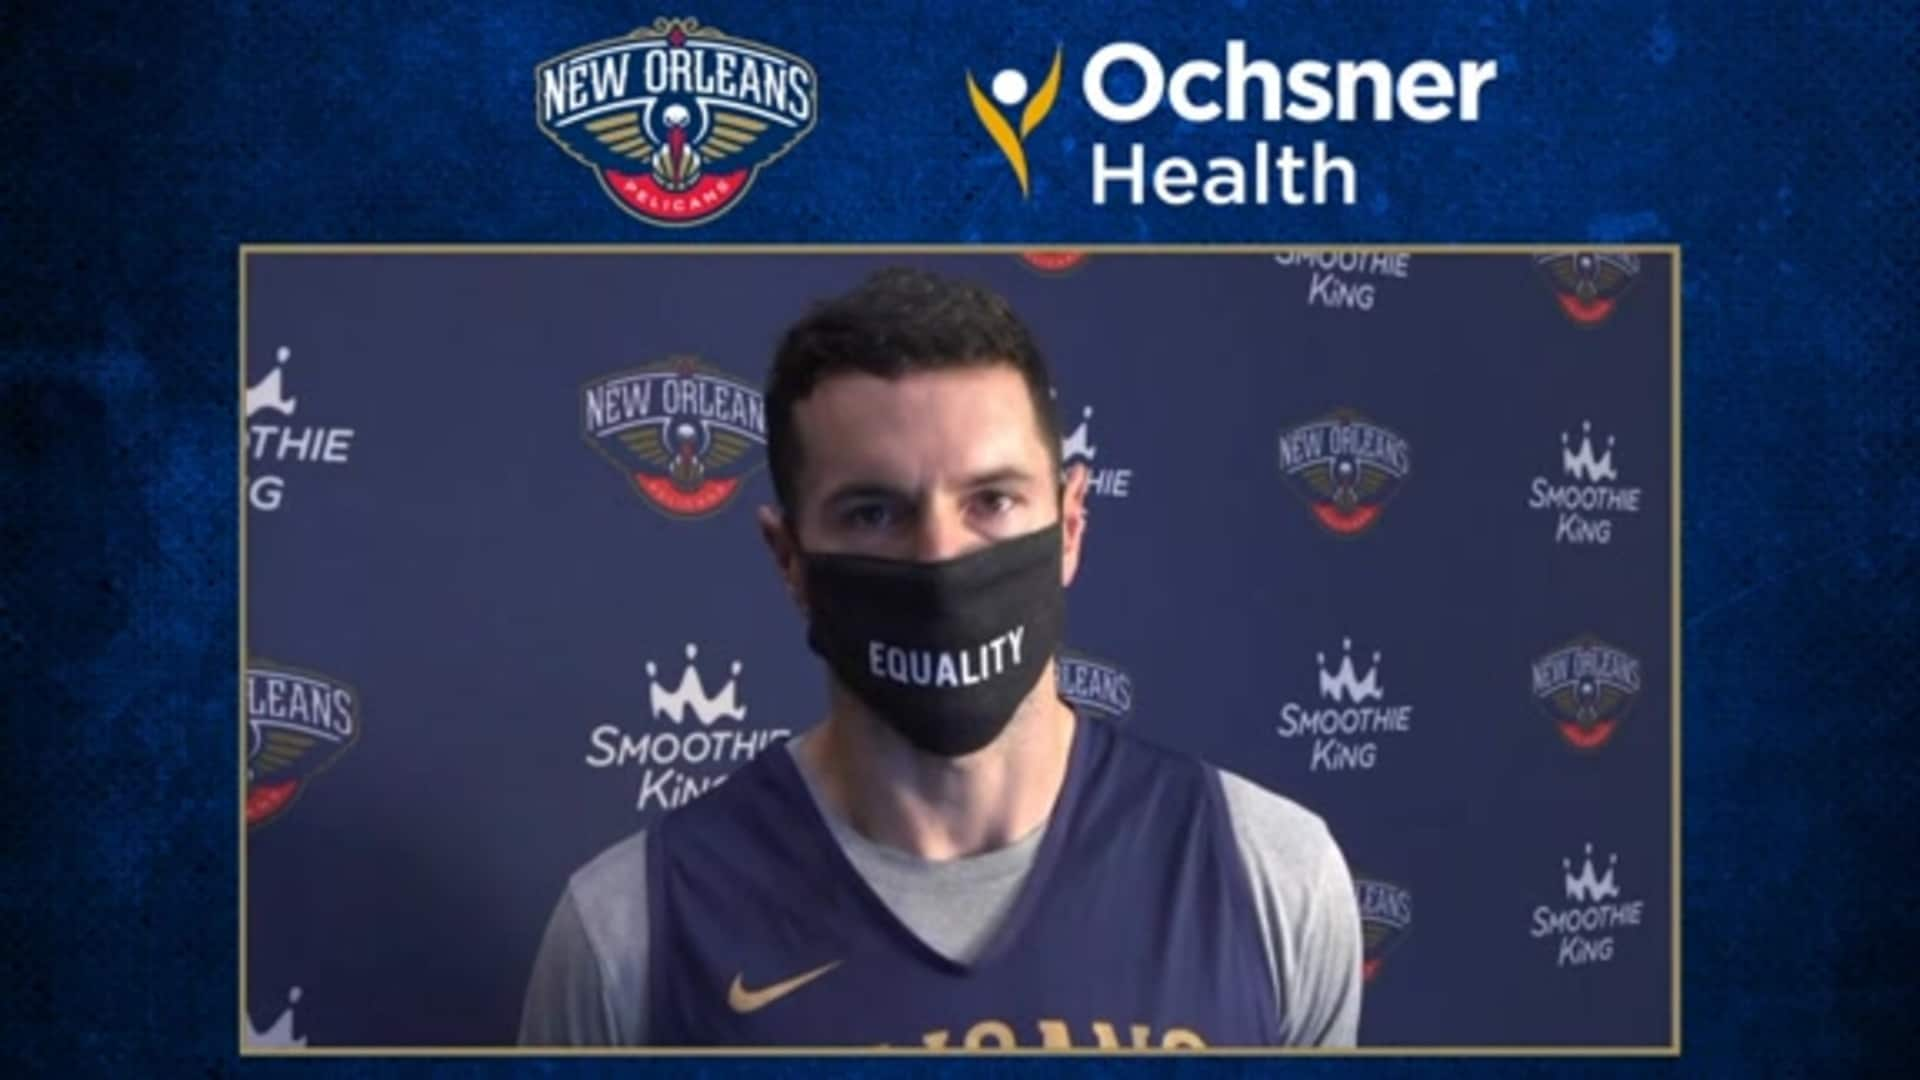 Ochsner Pelicans Practice: JJ Redick talks importance of tonight's game vs. Memphis Grizzlies